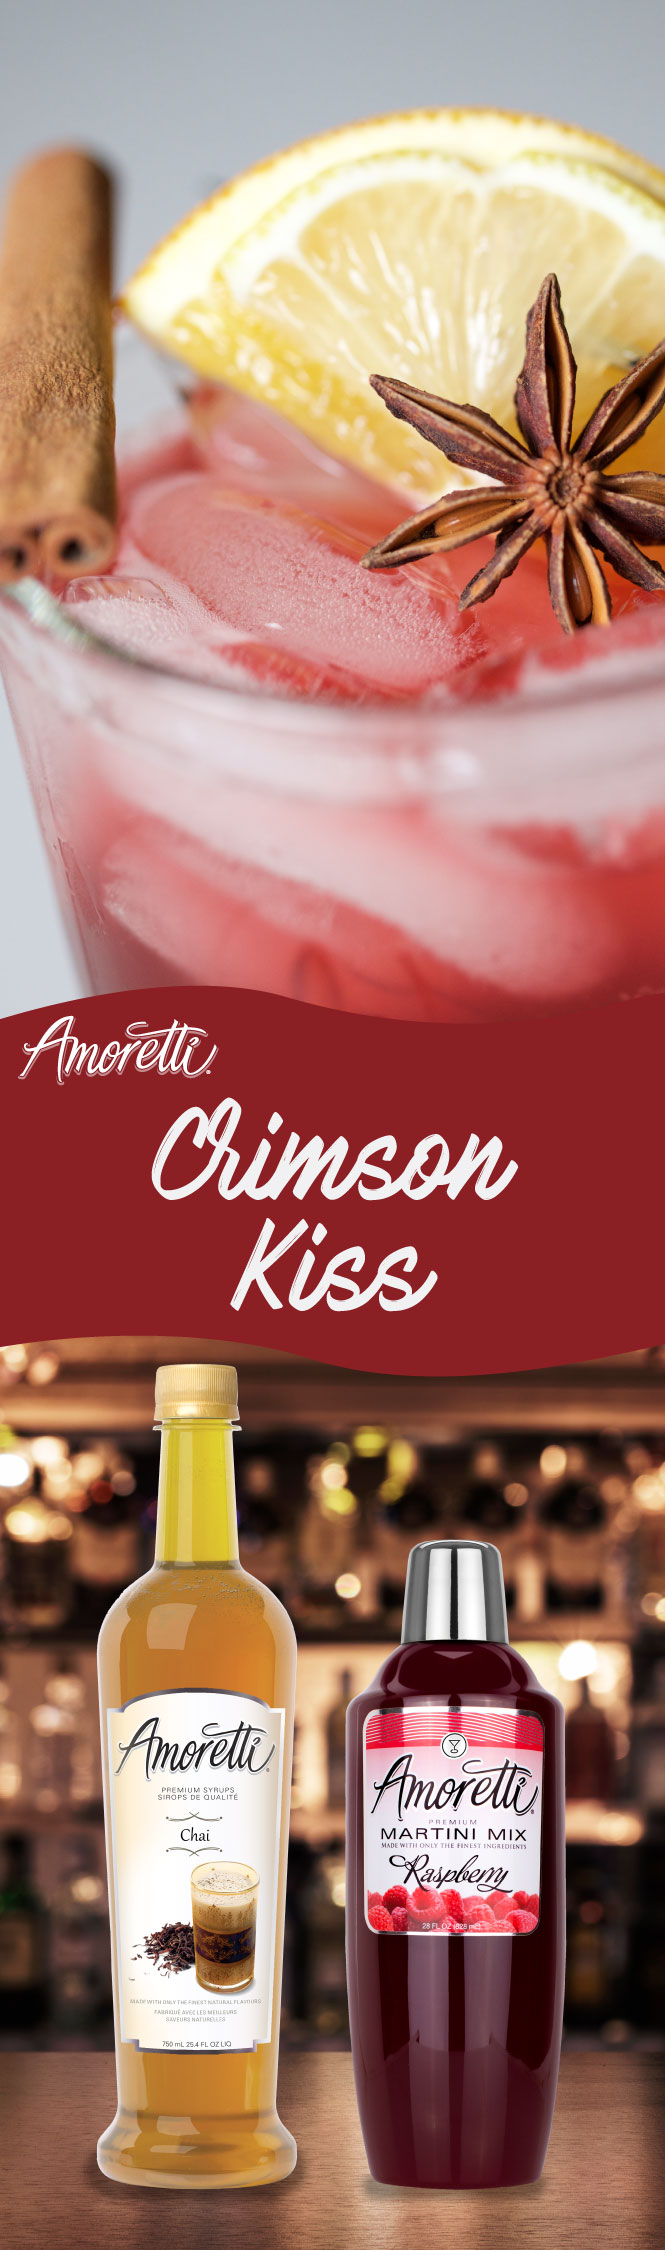 The kiss of flavor is what this drink is all about! Excellent combination of Chai and Raspberry!